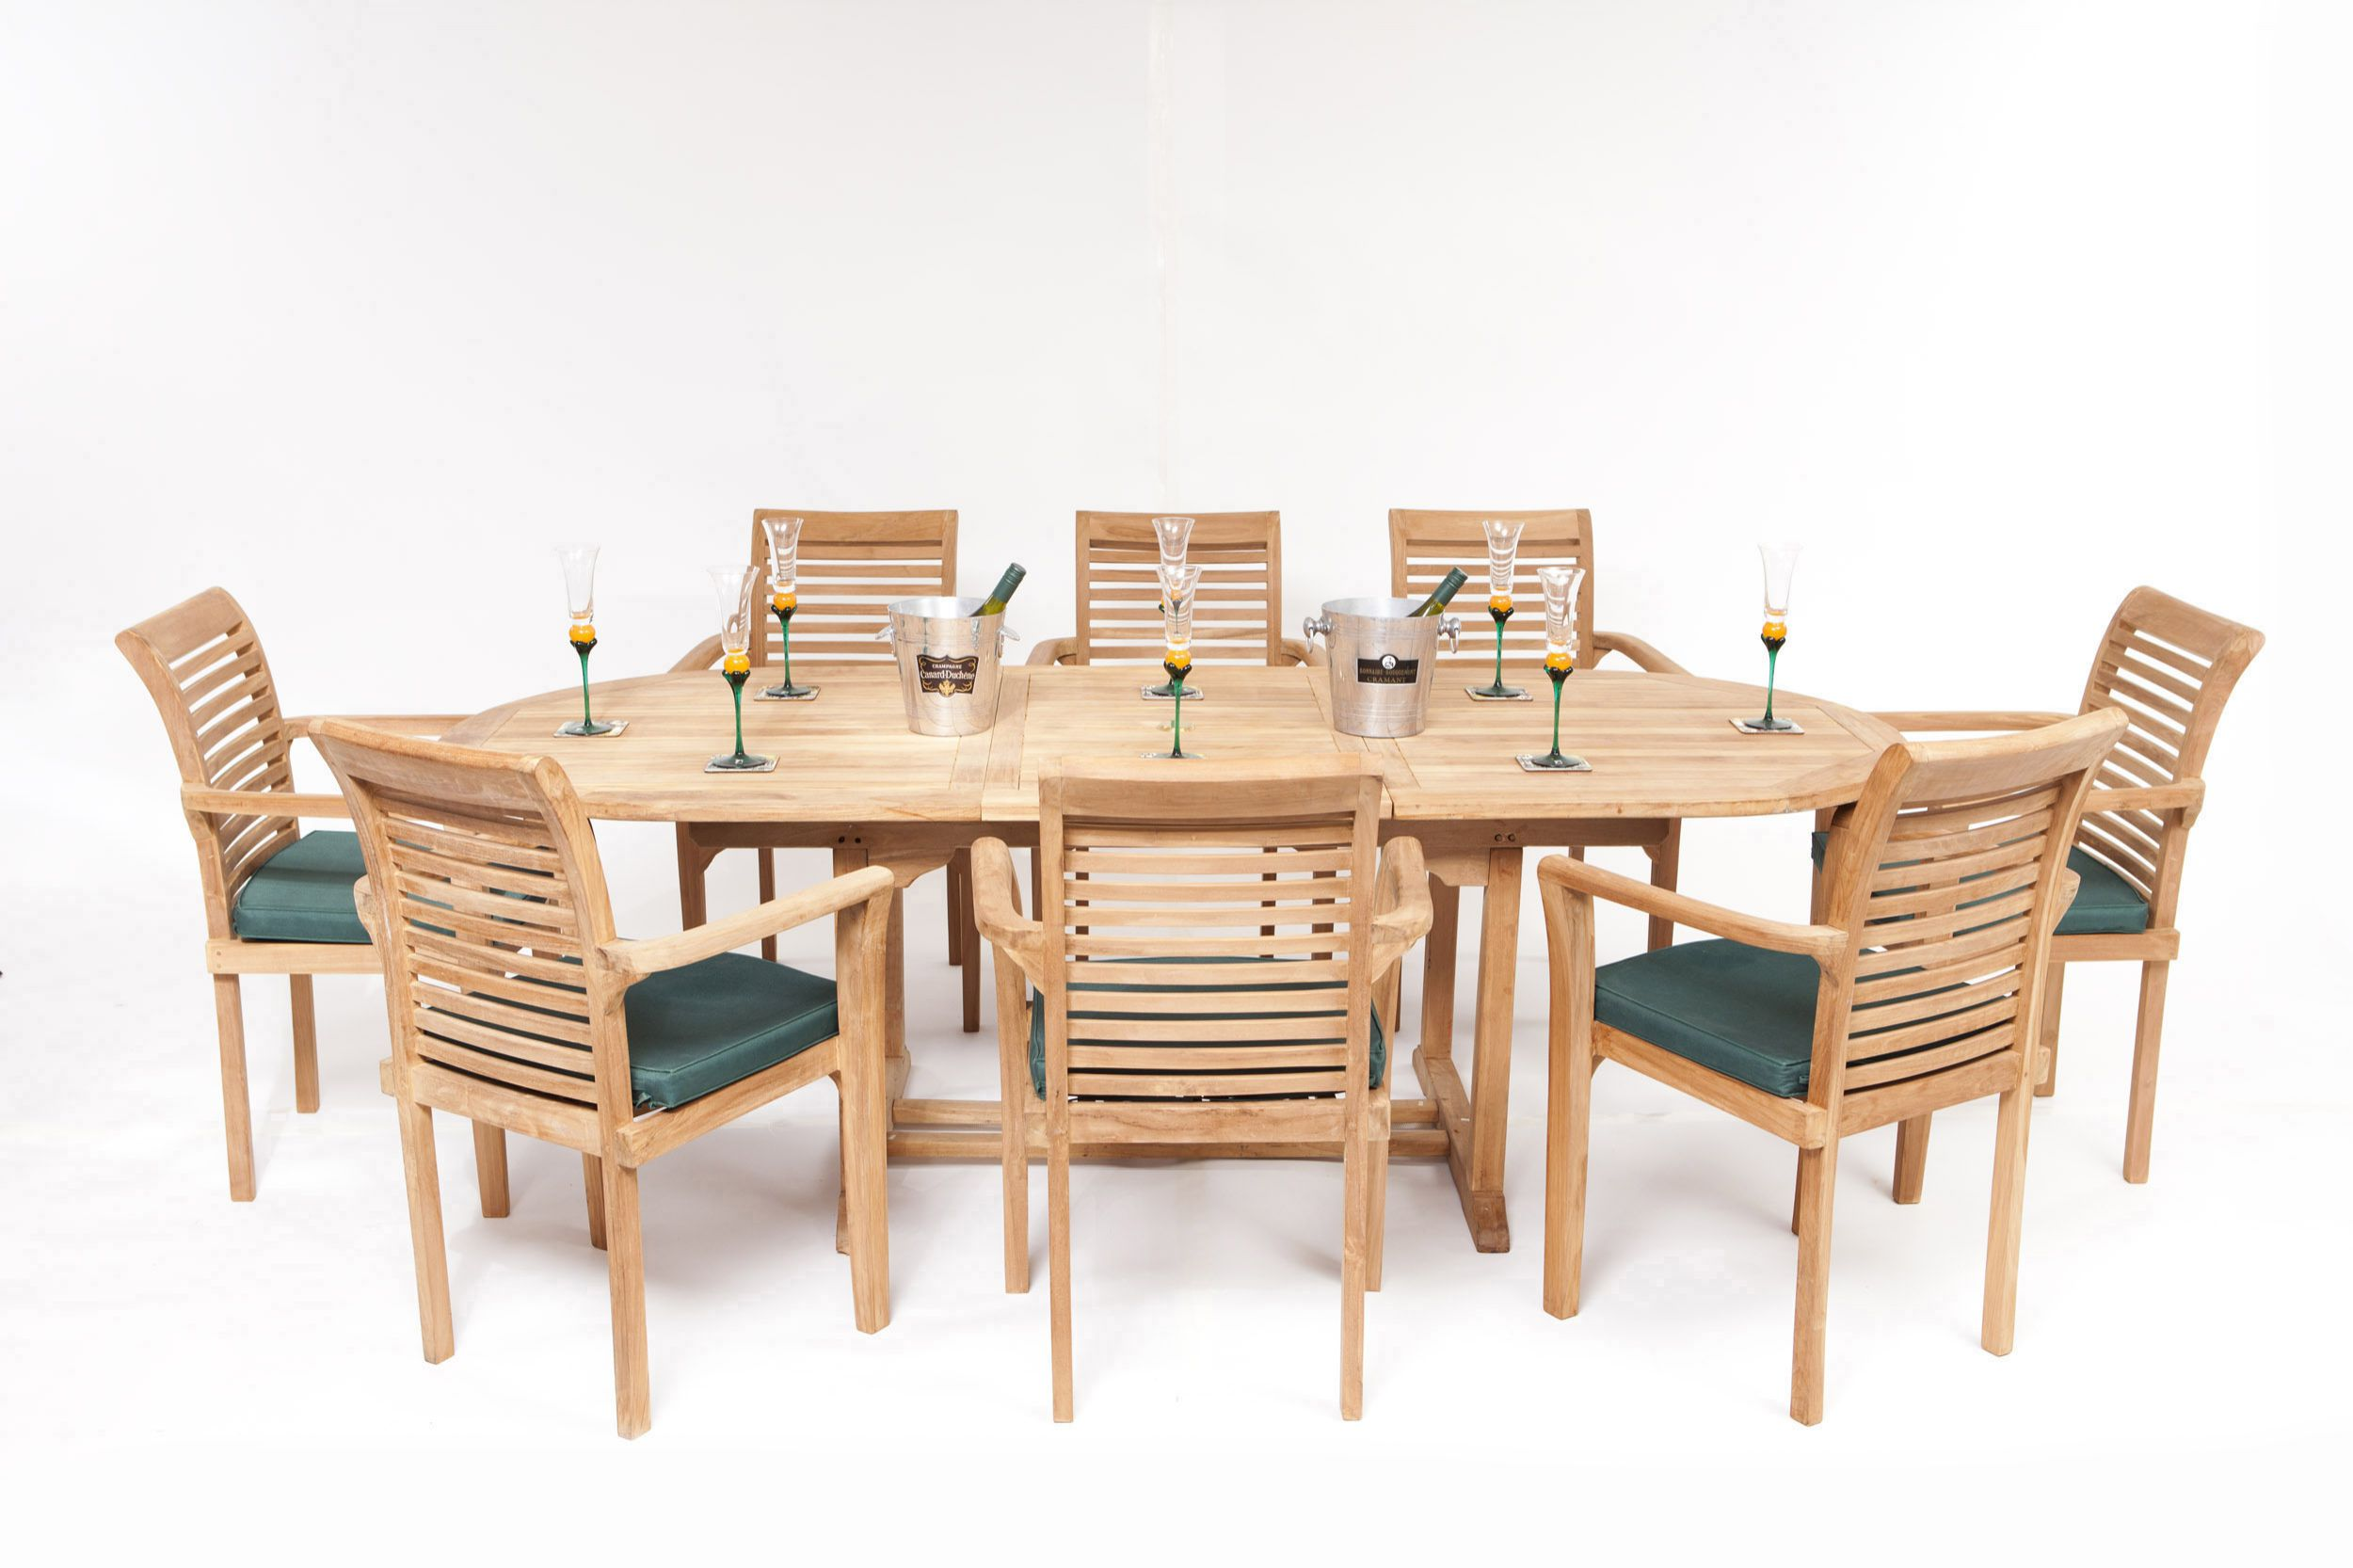 8 Seater Garden Furniture Sale Teak patio furniture sets tables and chairs humber imports monte carlo 8 seater teak garden furniture set workwithnaturefo